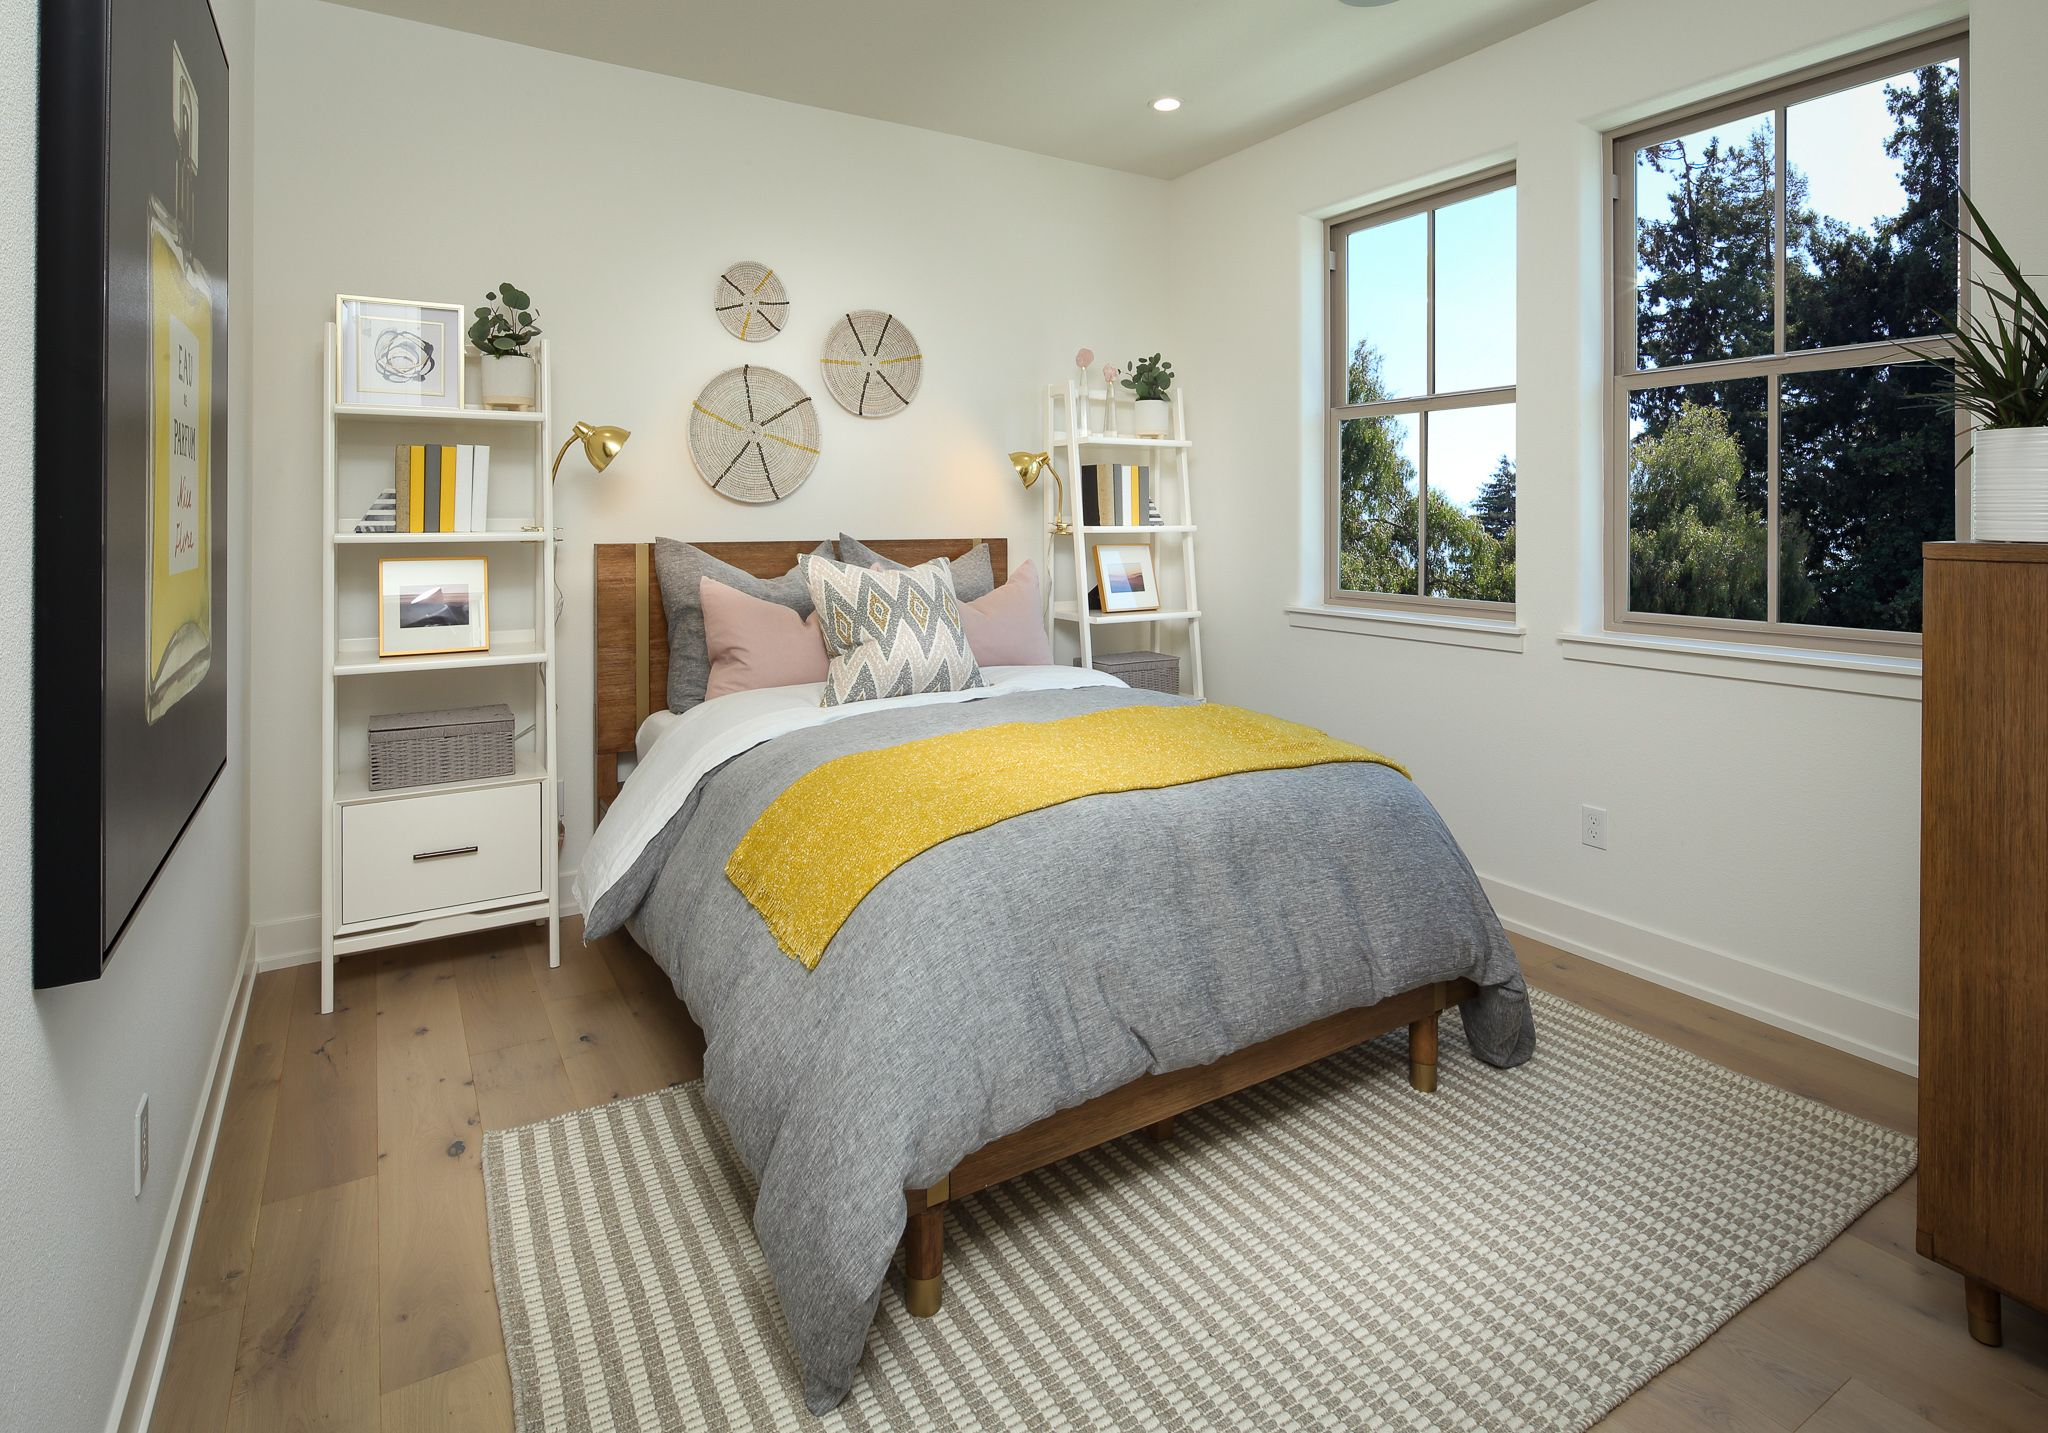 Bedroom featured in the Maravilla- Plan 1 By Dividend Homes in San Jose, CA